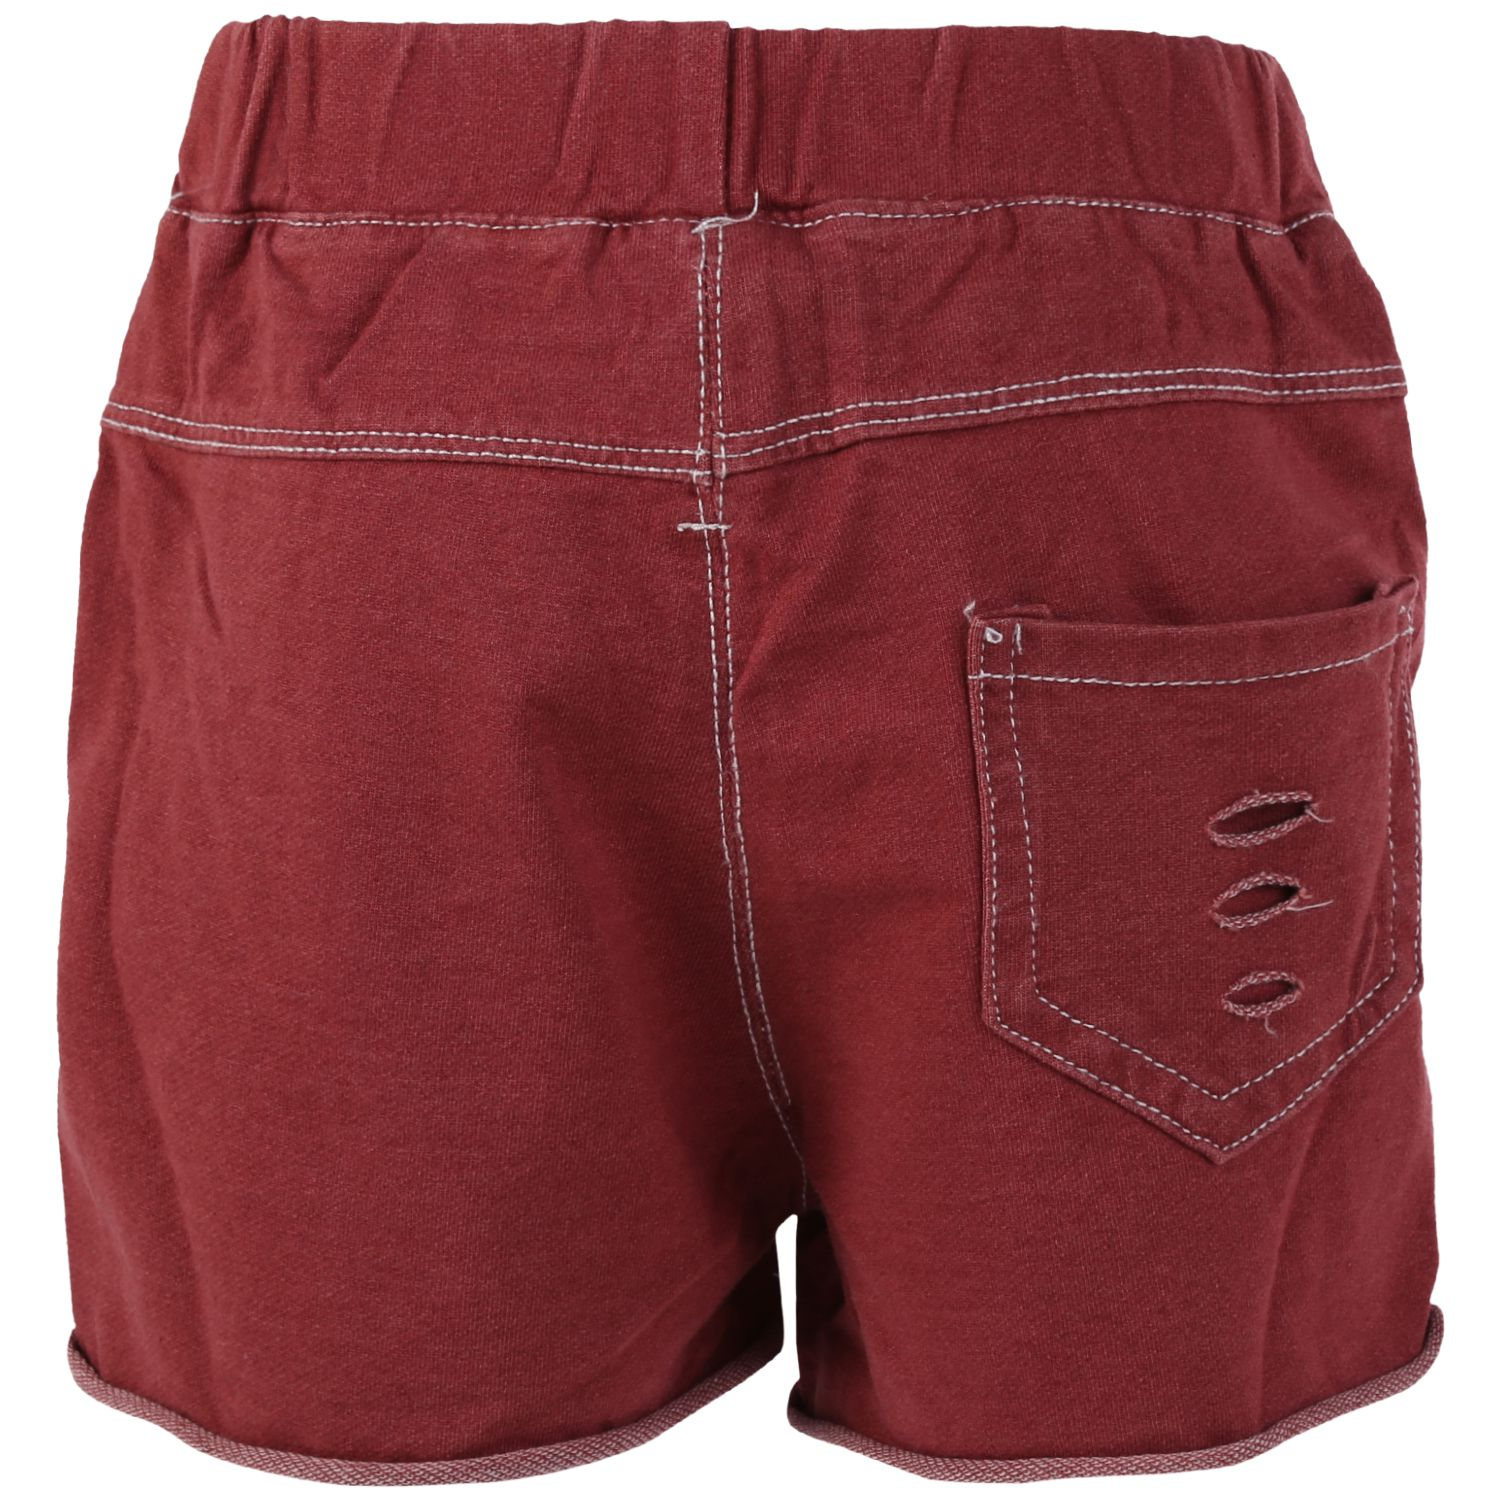 Blisara Girls Jeans Style Logo Maroon Short Pant (Size Suitable for 3 to 4 years)